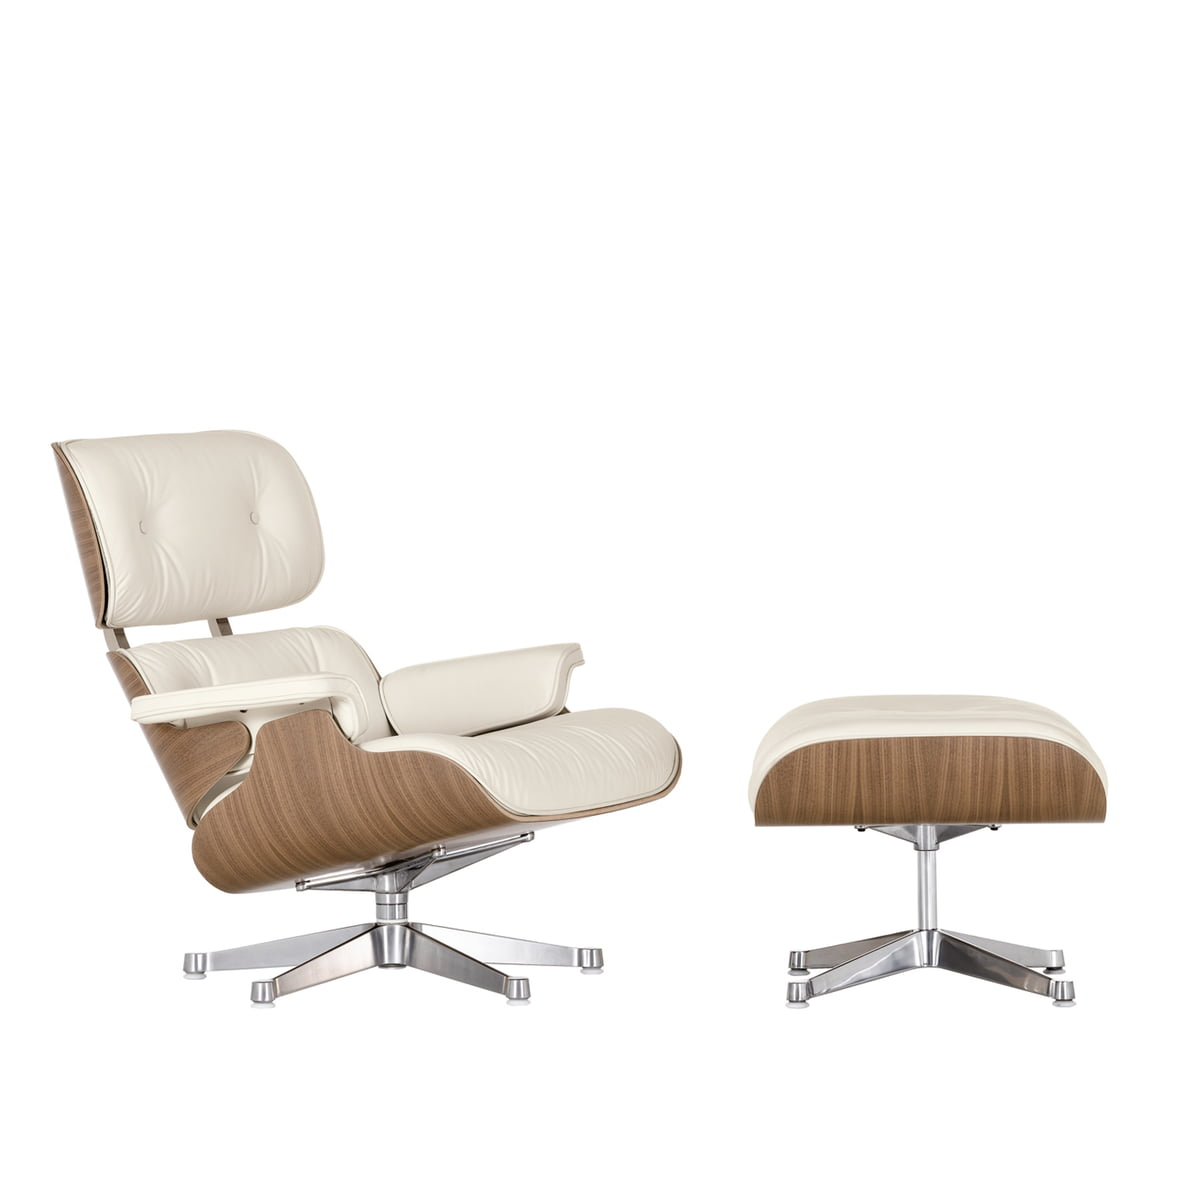 Vitra Lounge Chair + Ottoman   Walnut, White, Polished